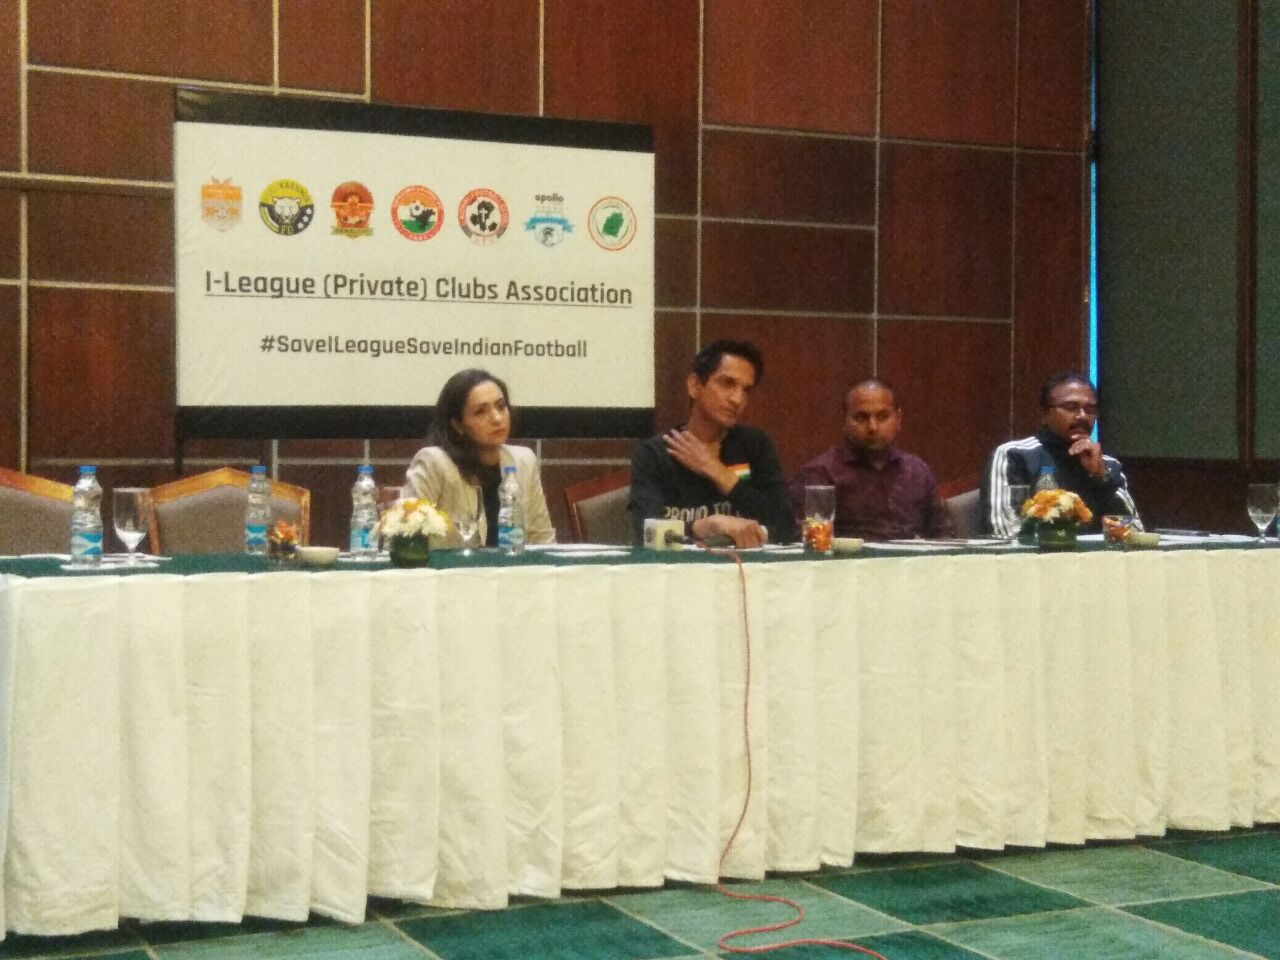 Gokulam Kerala's VC Praveen laments Super Cup sanction - 'We do not have the money to pay the fine'